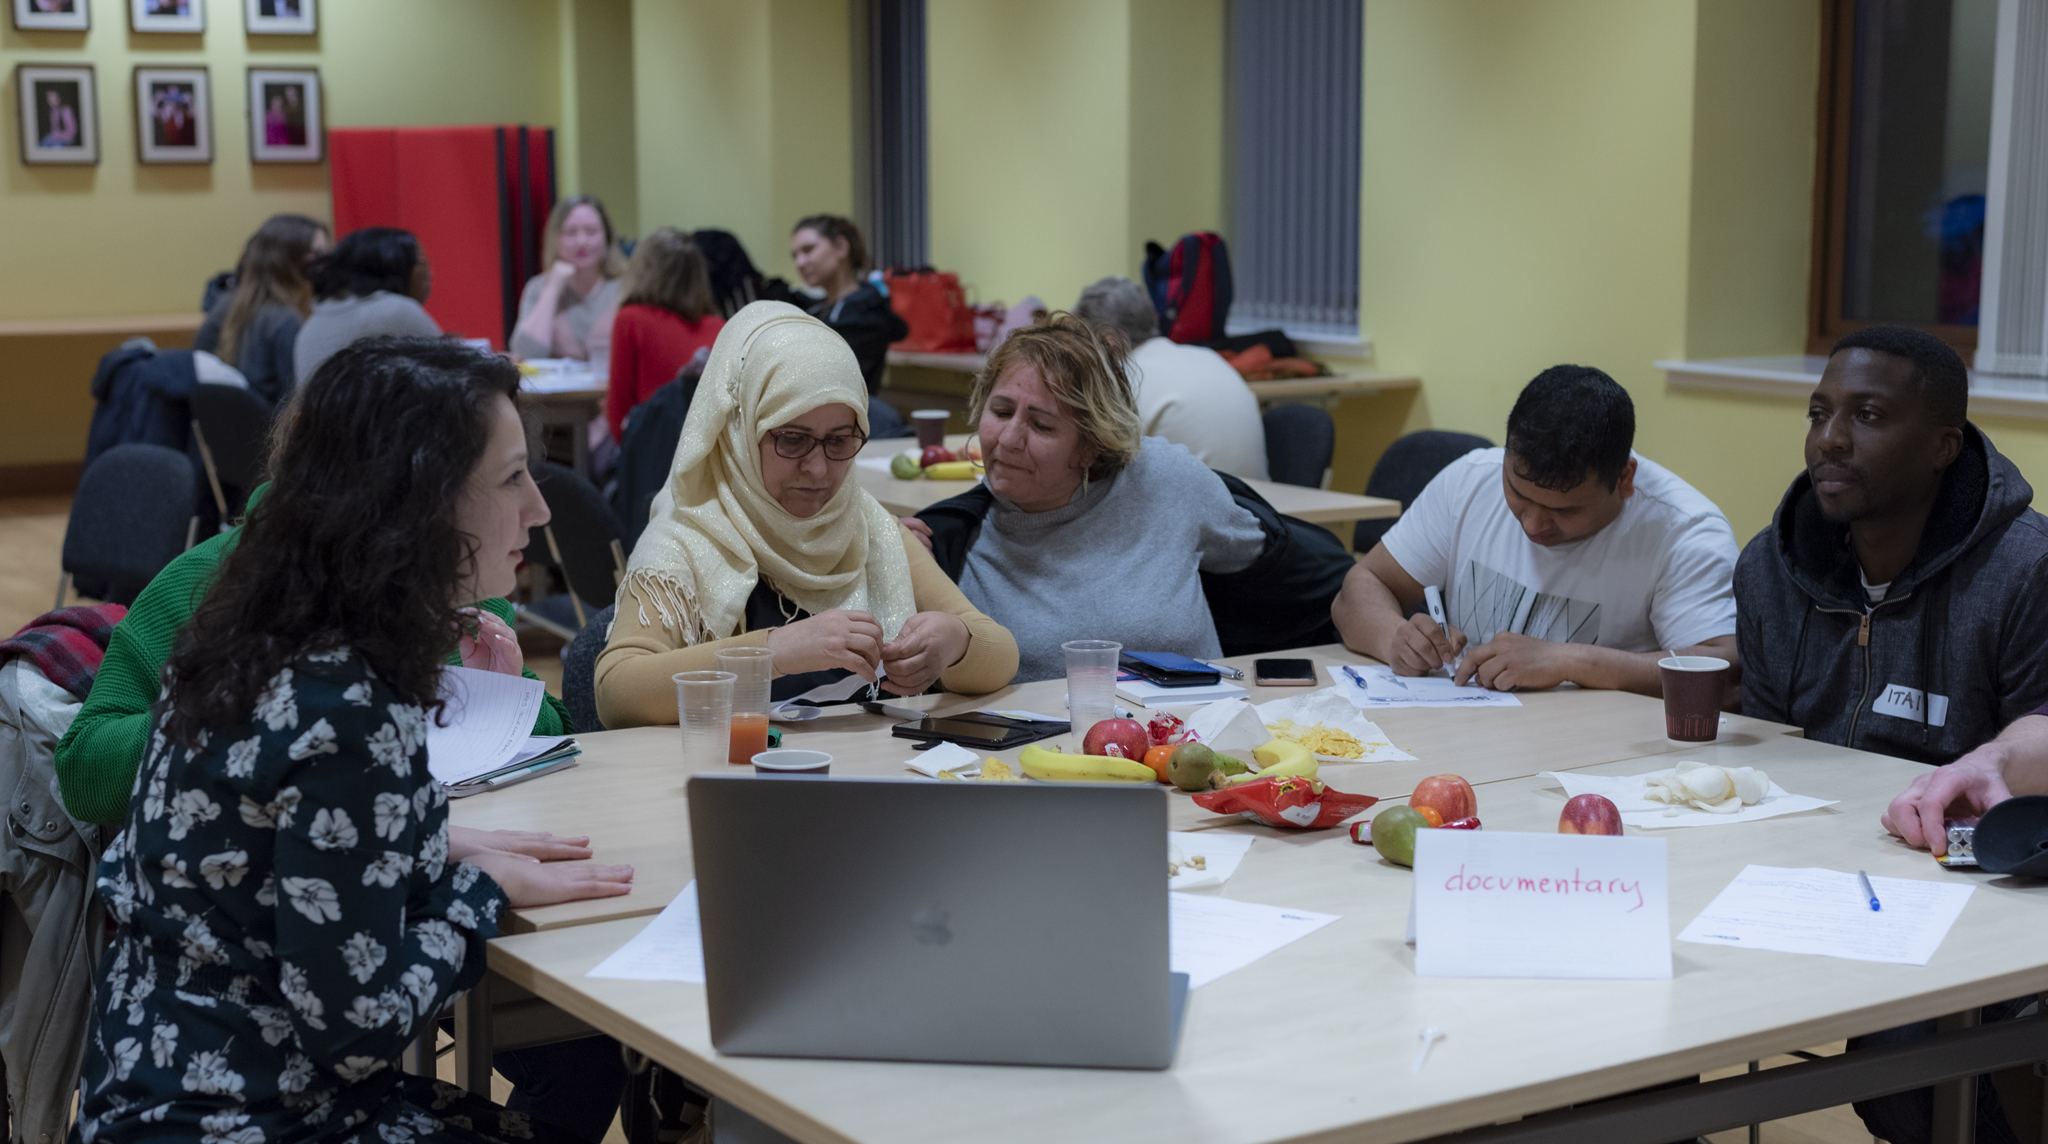 media lab training 'we need to speak for ourselves'